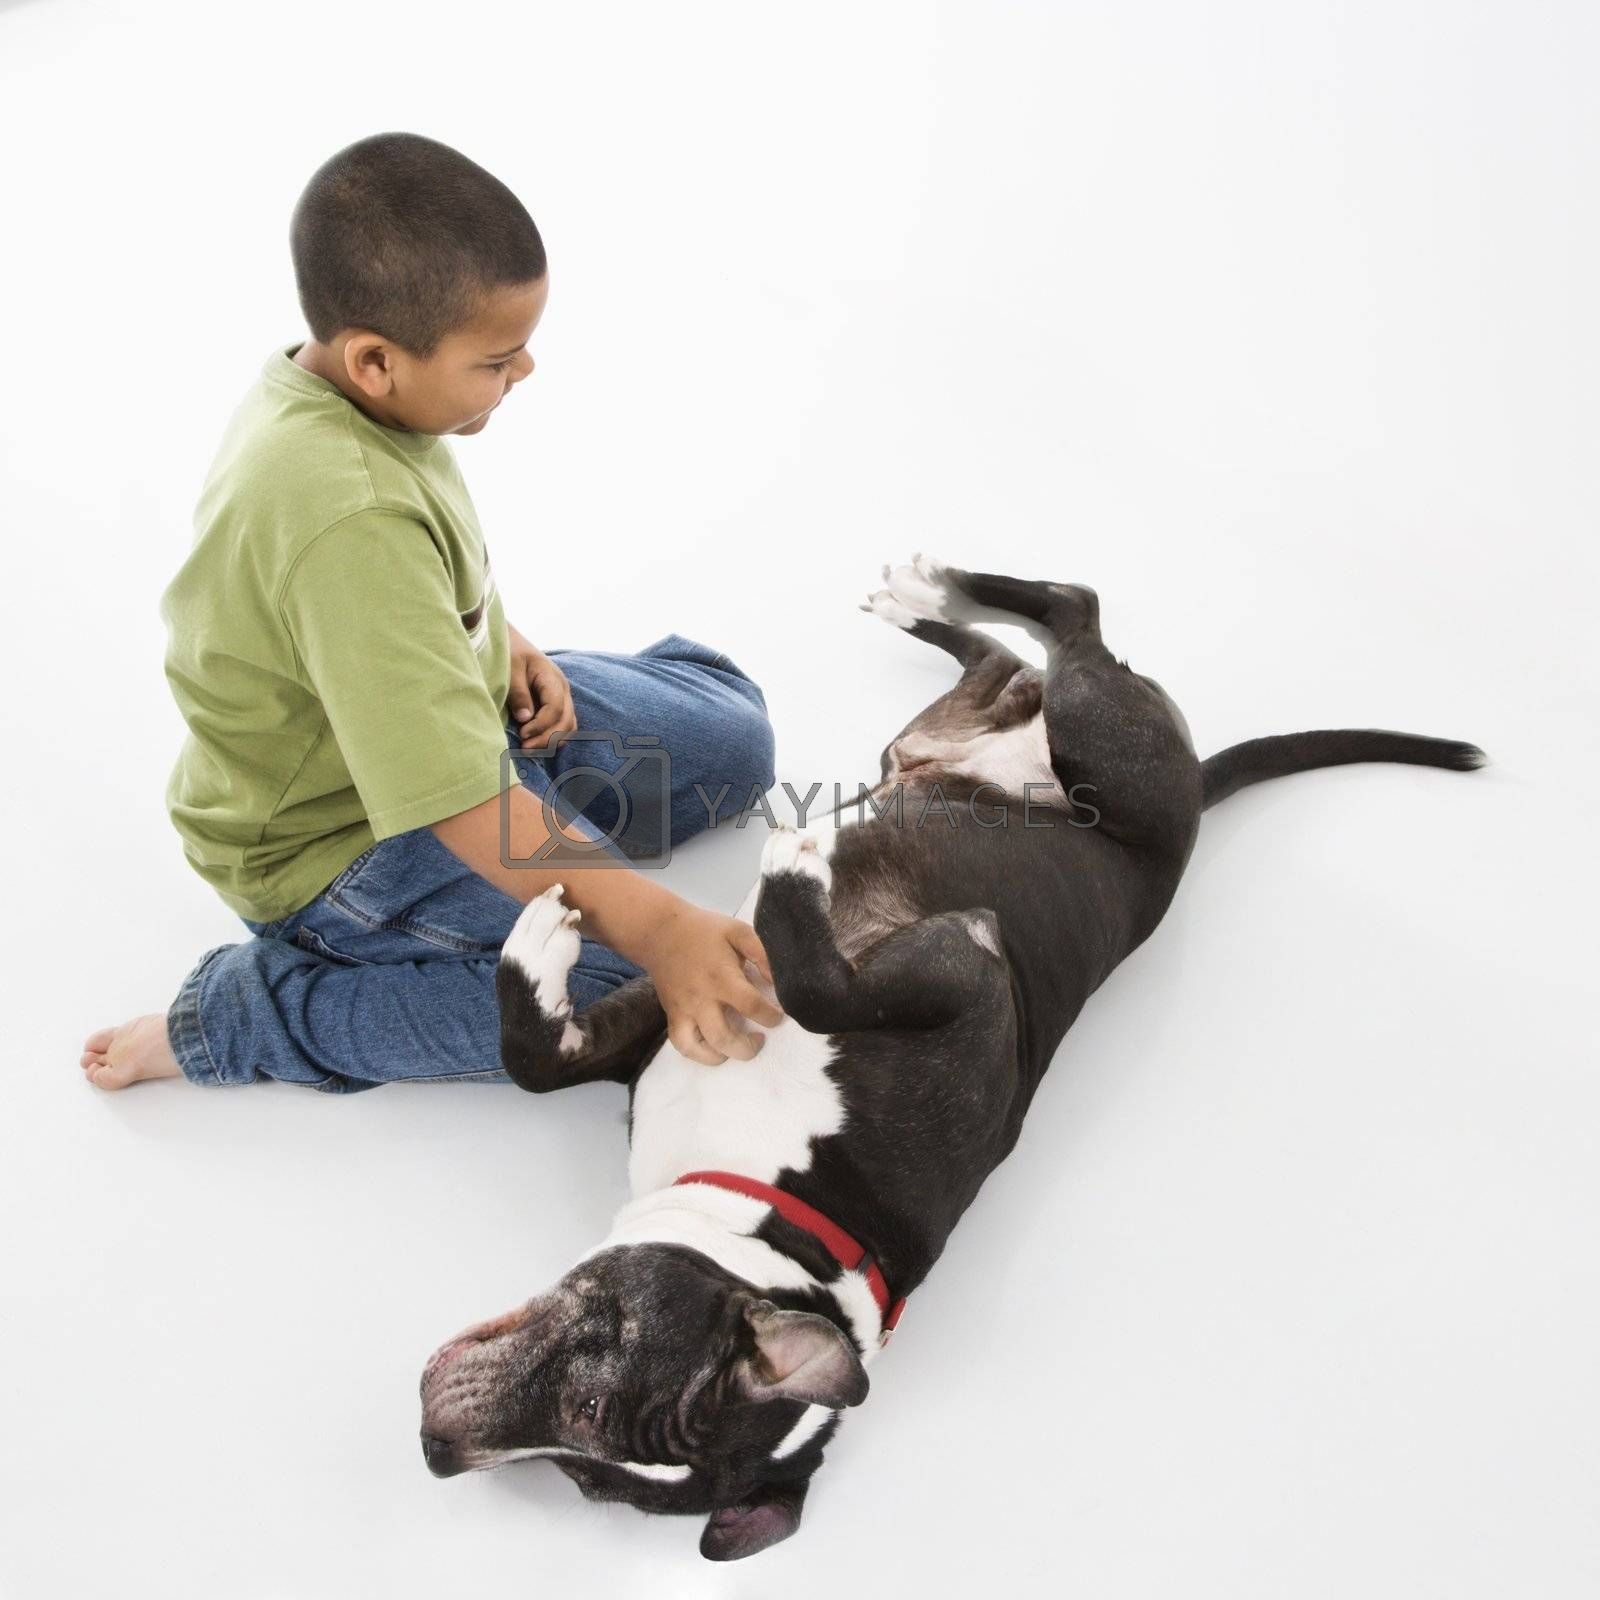 Young hispanic boy petting black and white dog on floor.